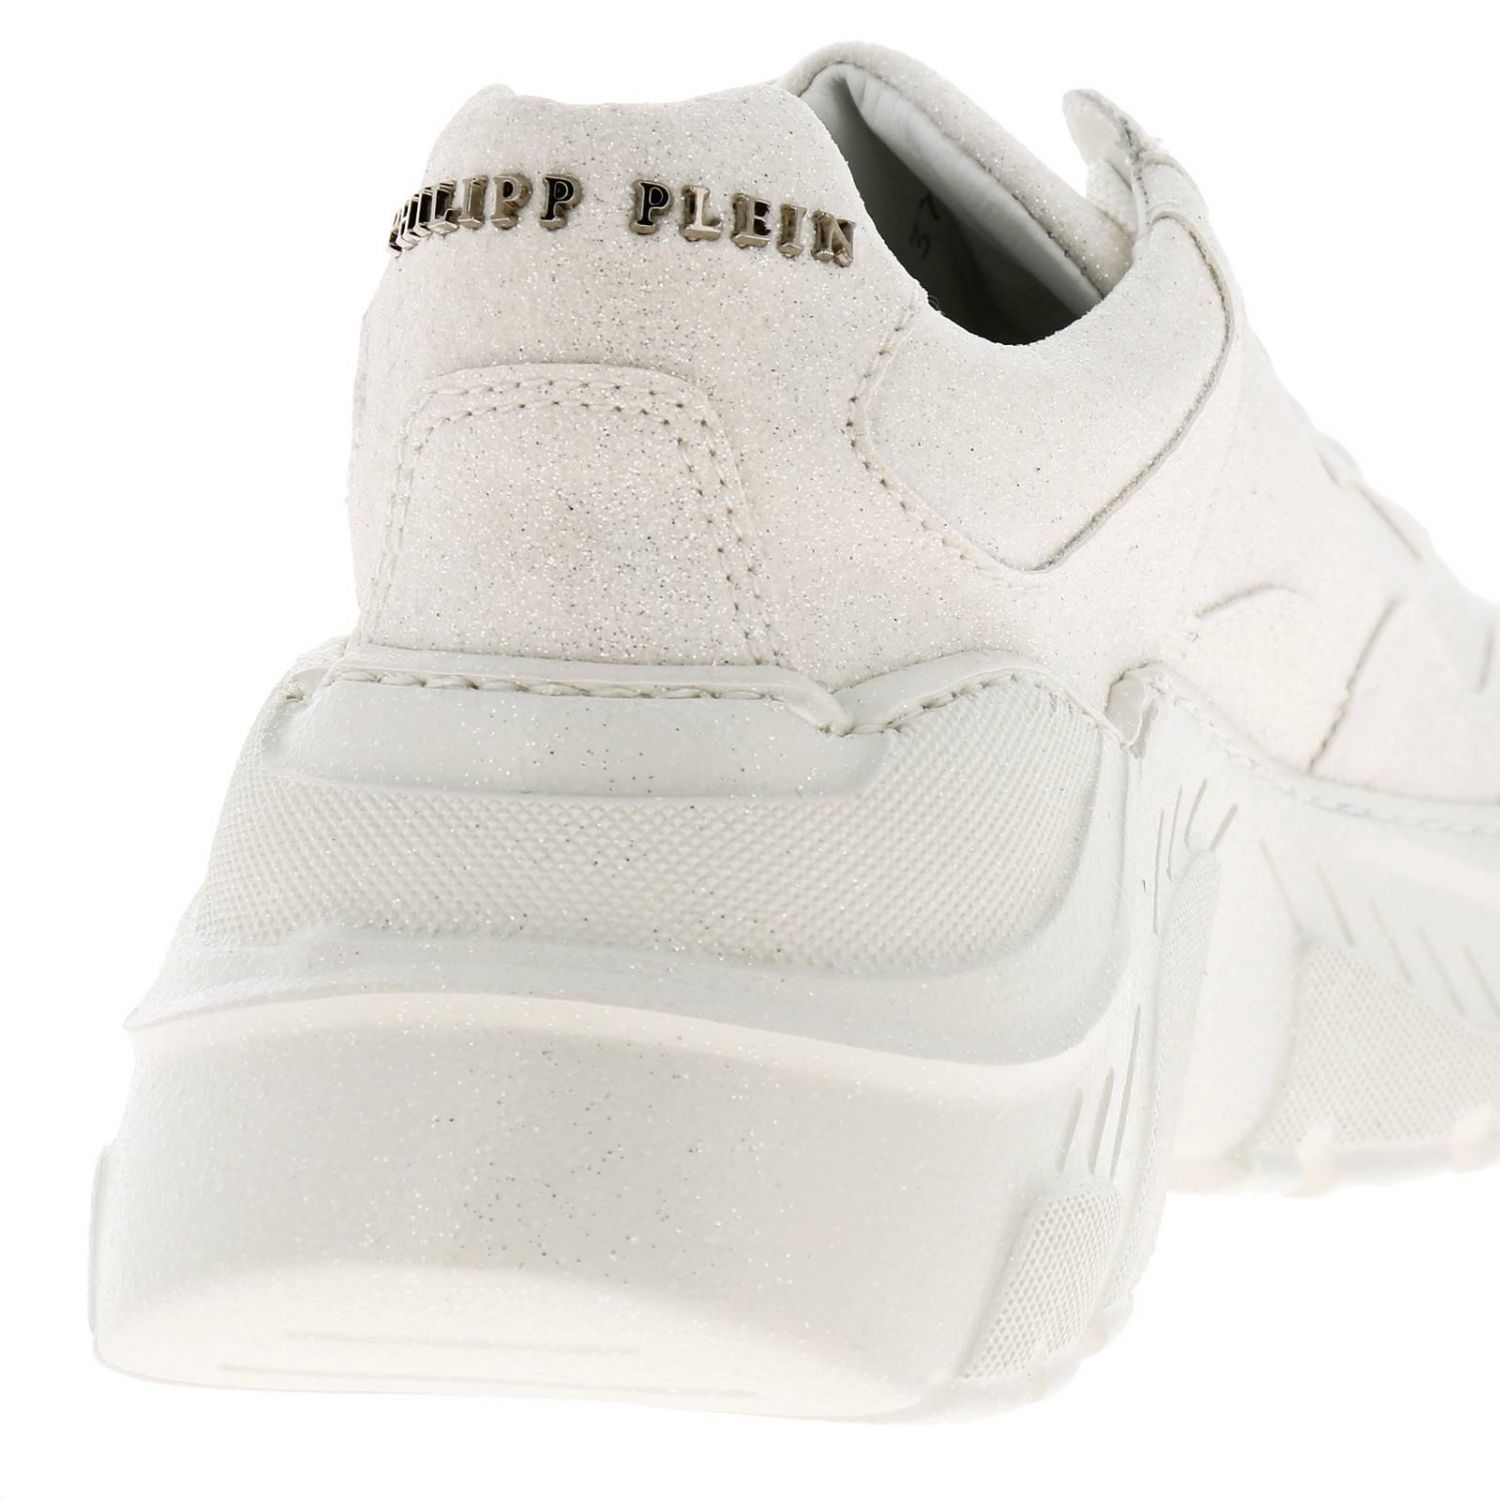 Crystal Philipp Plein Runner sneakers in glitter fabric with logo white 4